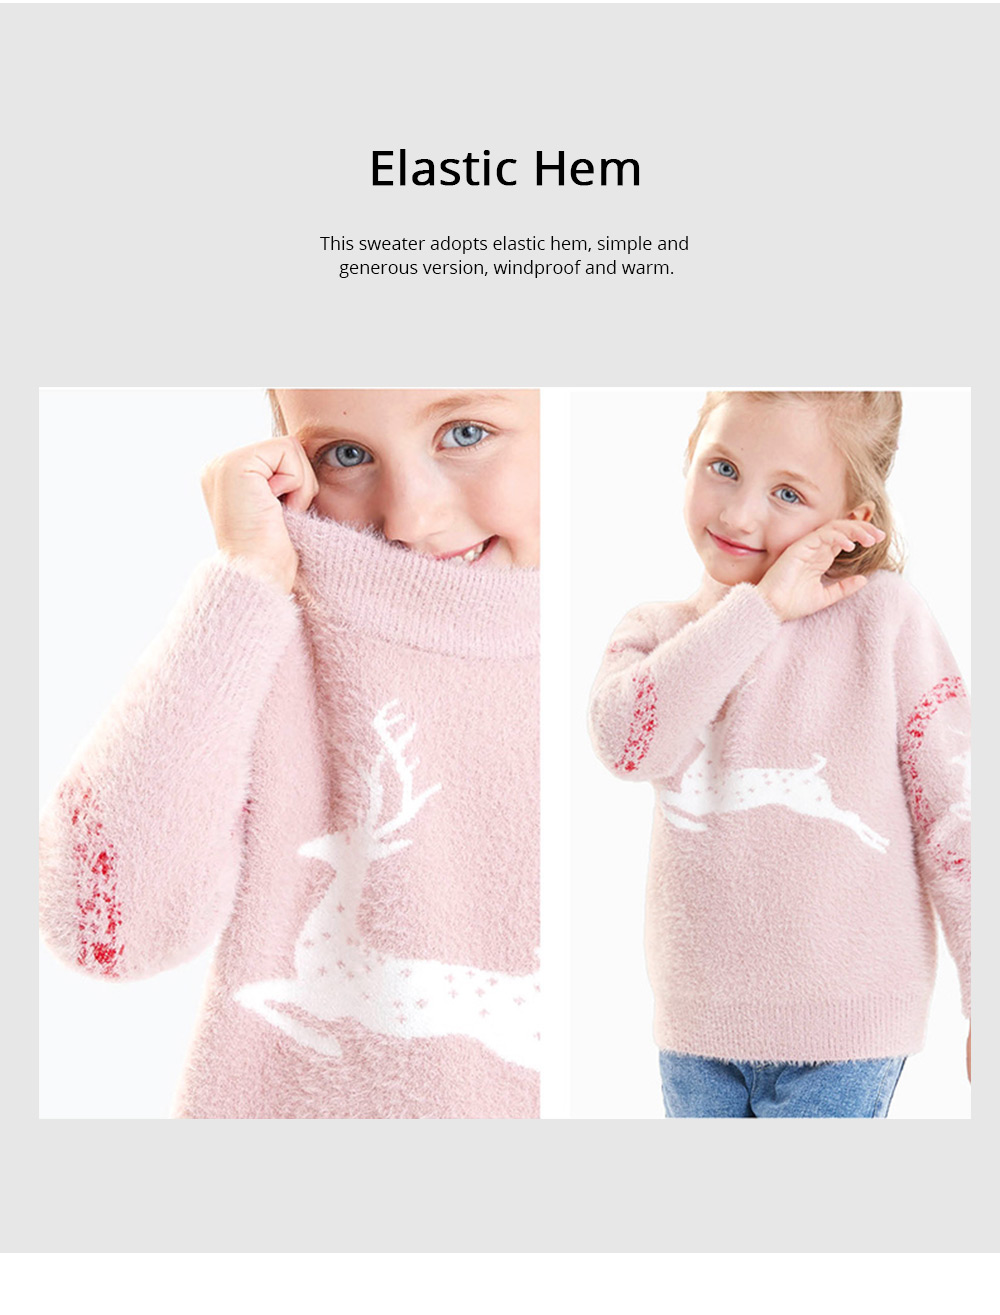 Children's Mink Autumn Warm Coat Winter Girl's Sweater 2019 New Style Girl's Pullover Thickened Top Christmas Gift 6